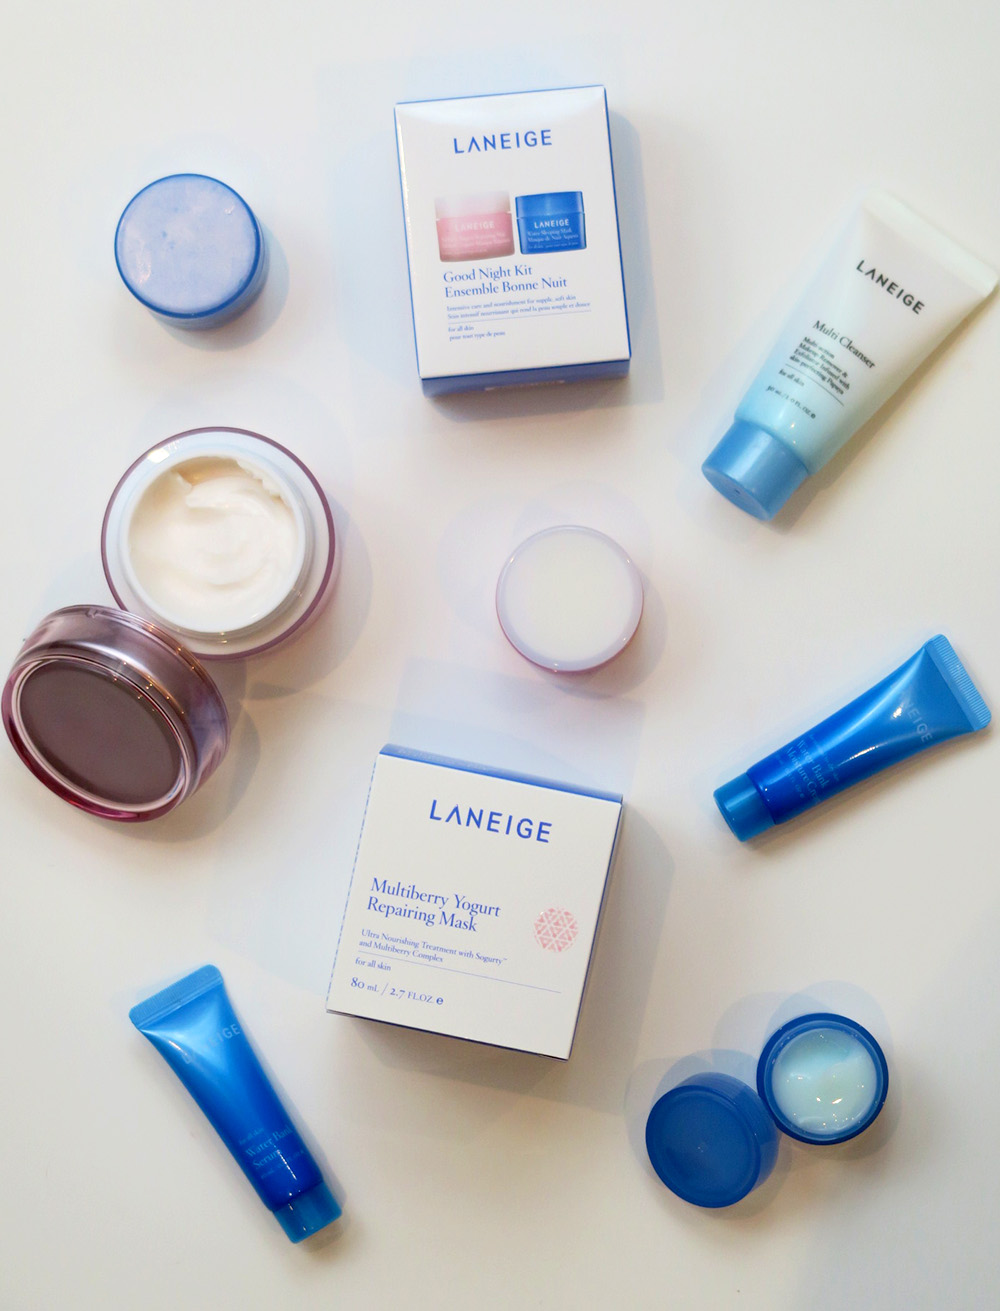 New Skincare Loves Laneige Advanced Hydration Kit Review Lip Sleeping Mask Travel Size You Can Find The Advance On Sephora For 15 Cad What A Steal I Love How Offers Trial Kits Its Great Way To Test Brand Before